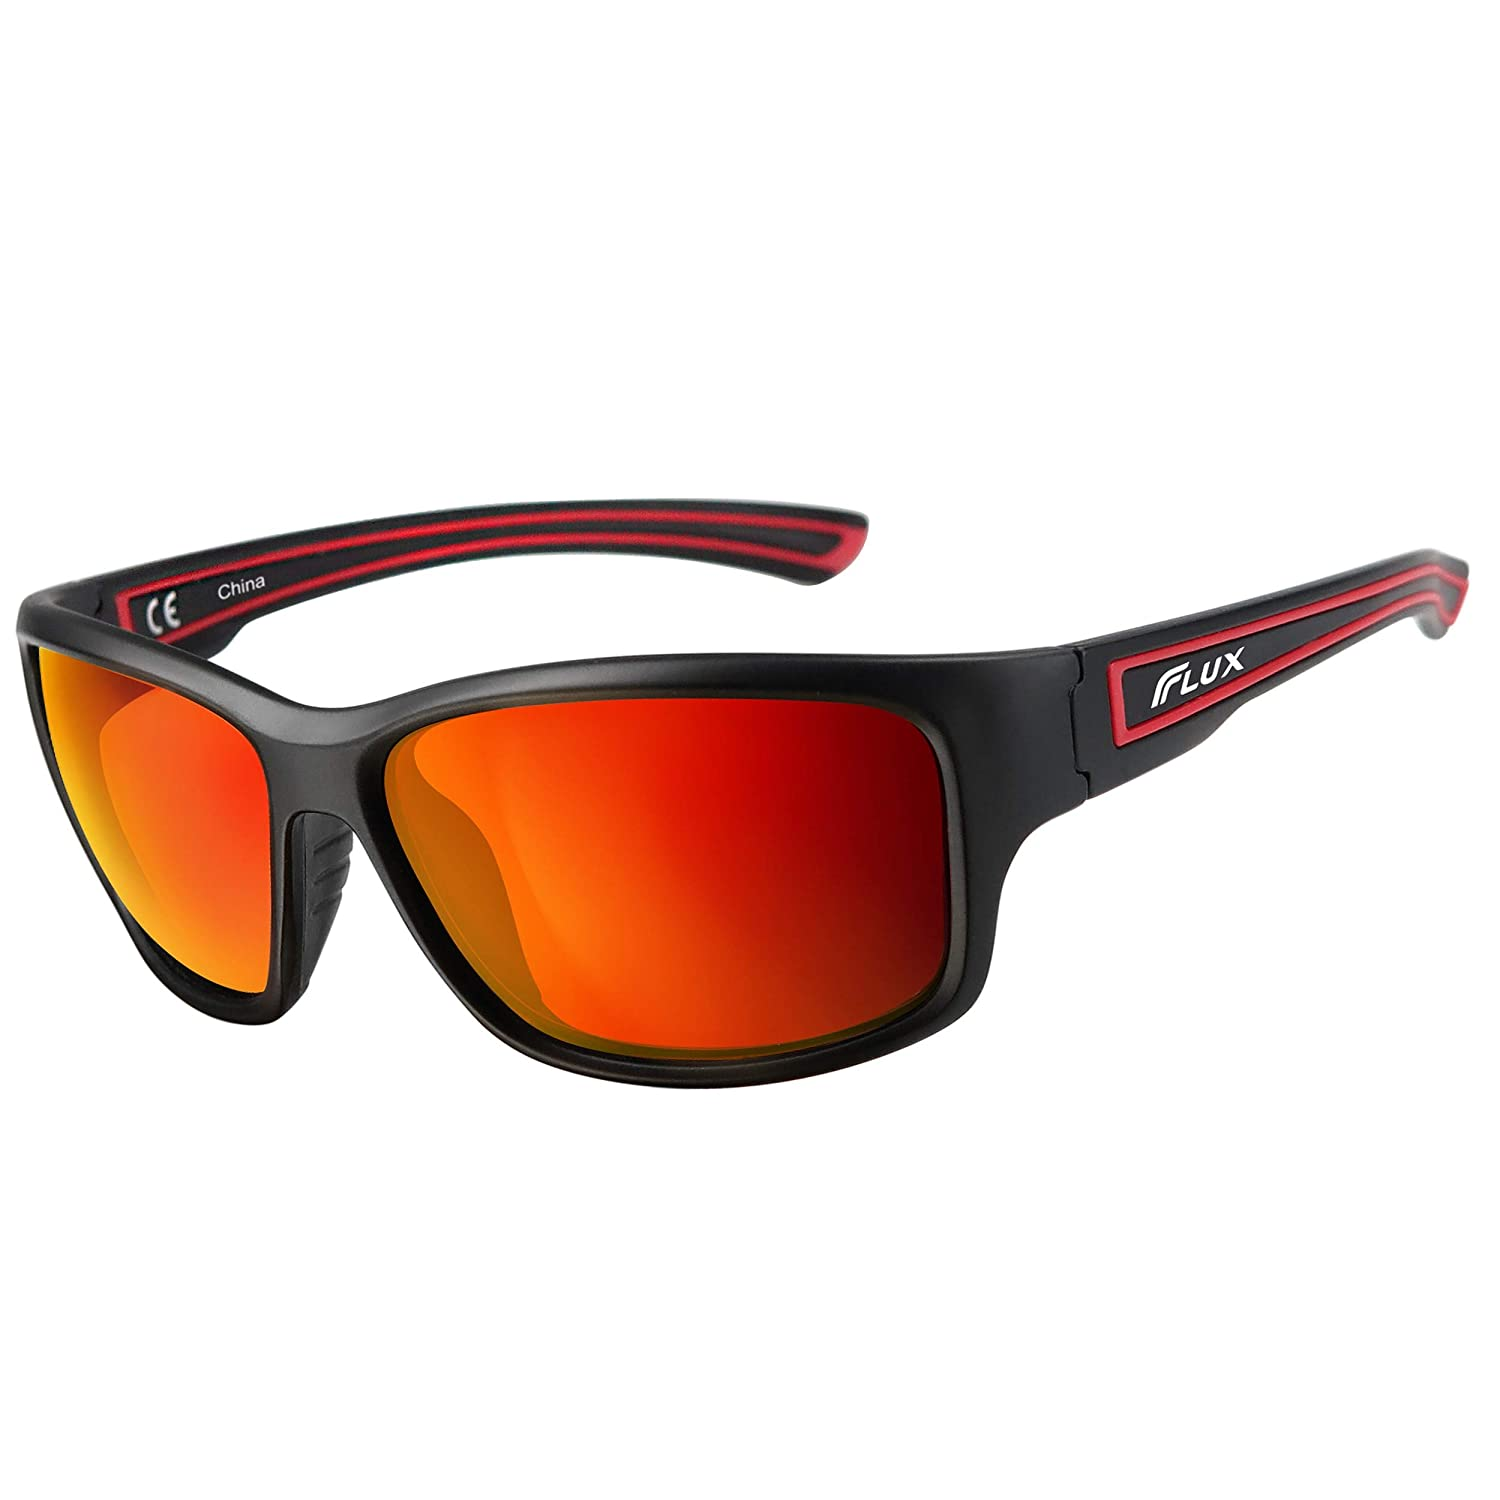 Flux Polarized Sports Sunglasses w/Anti-Slip Function and Light Frame PT005